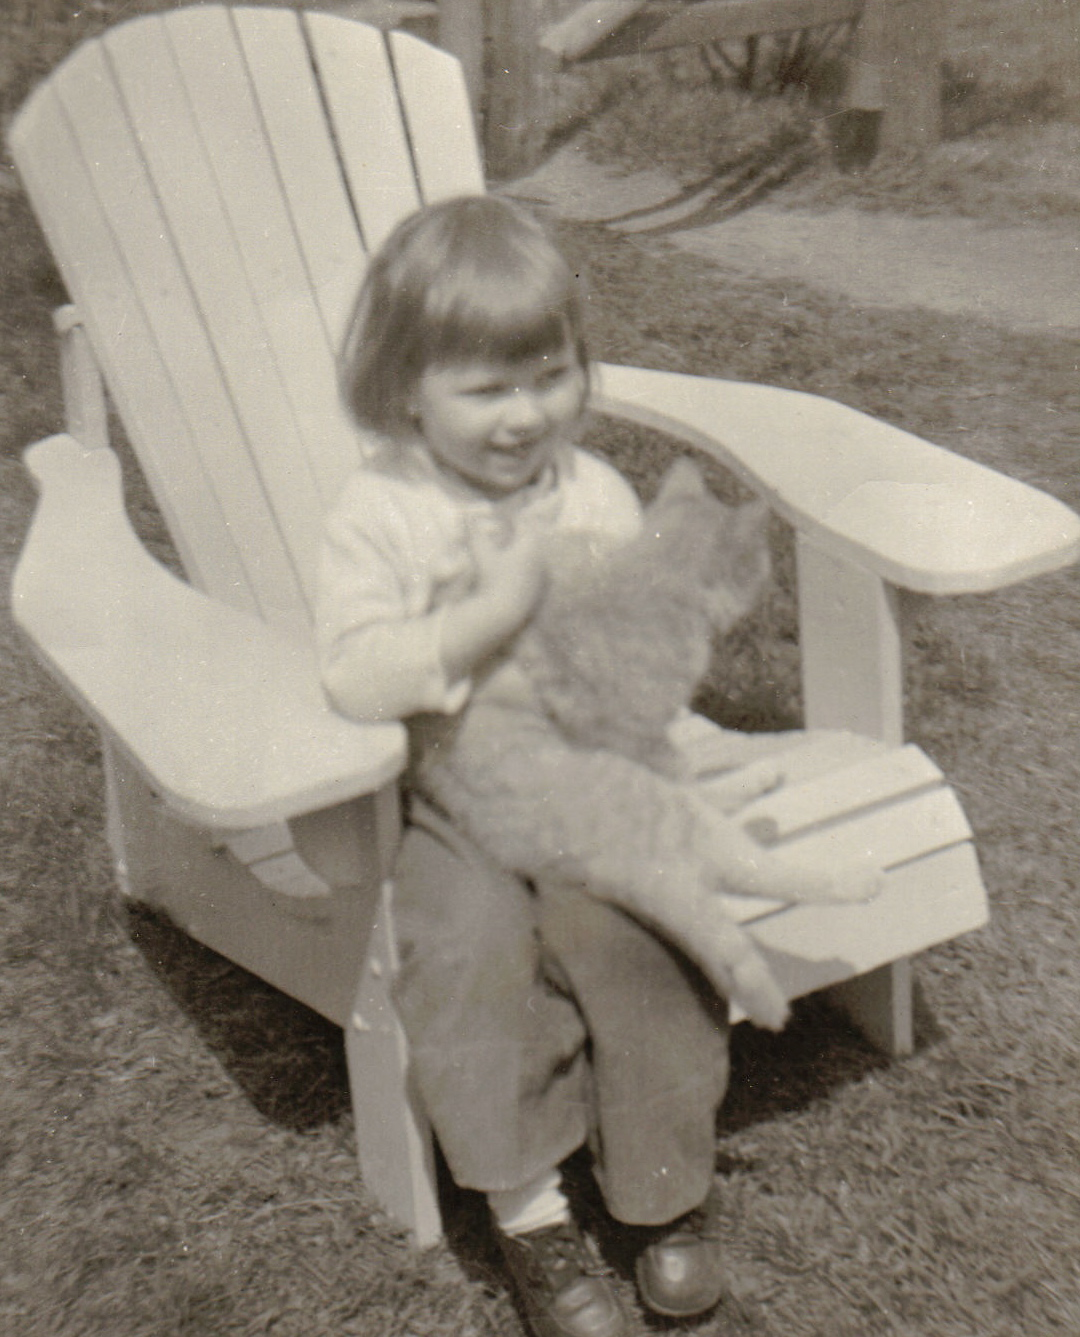 Donna-as-child-with-cat-on-lap1